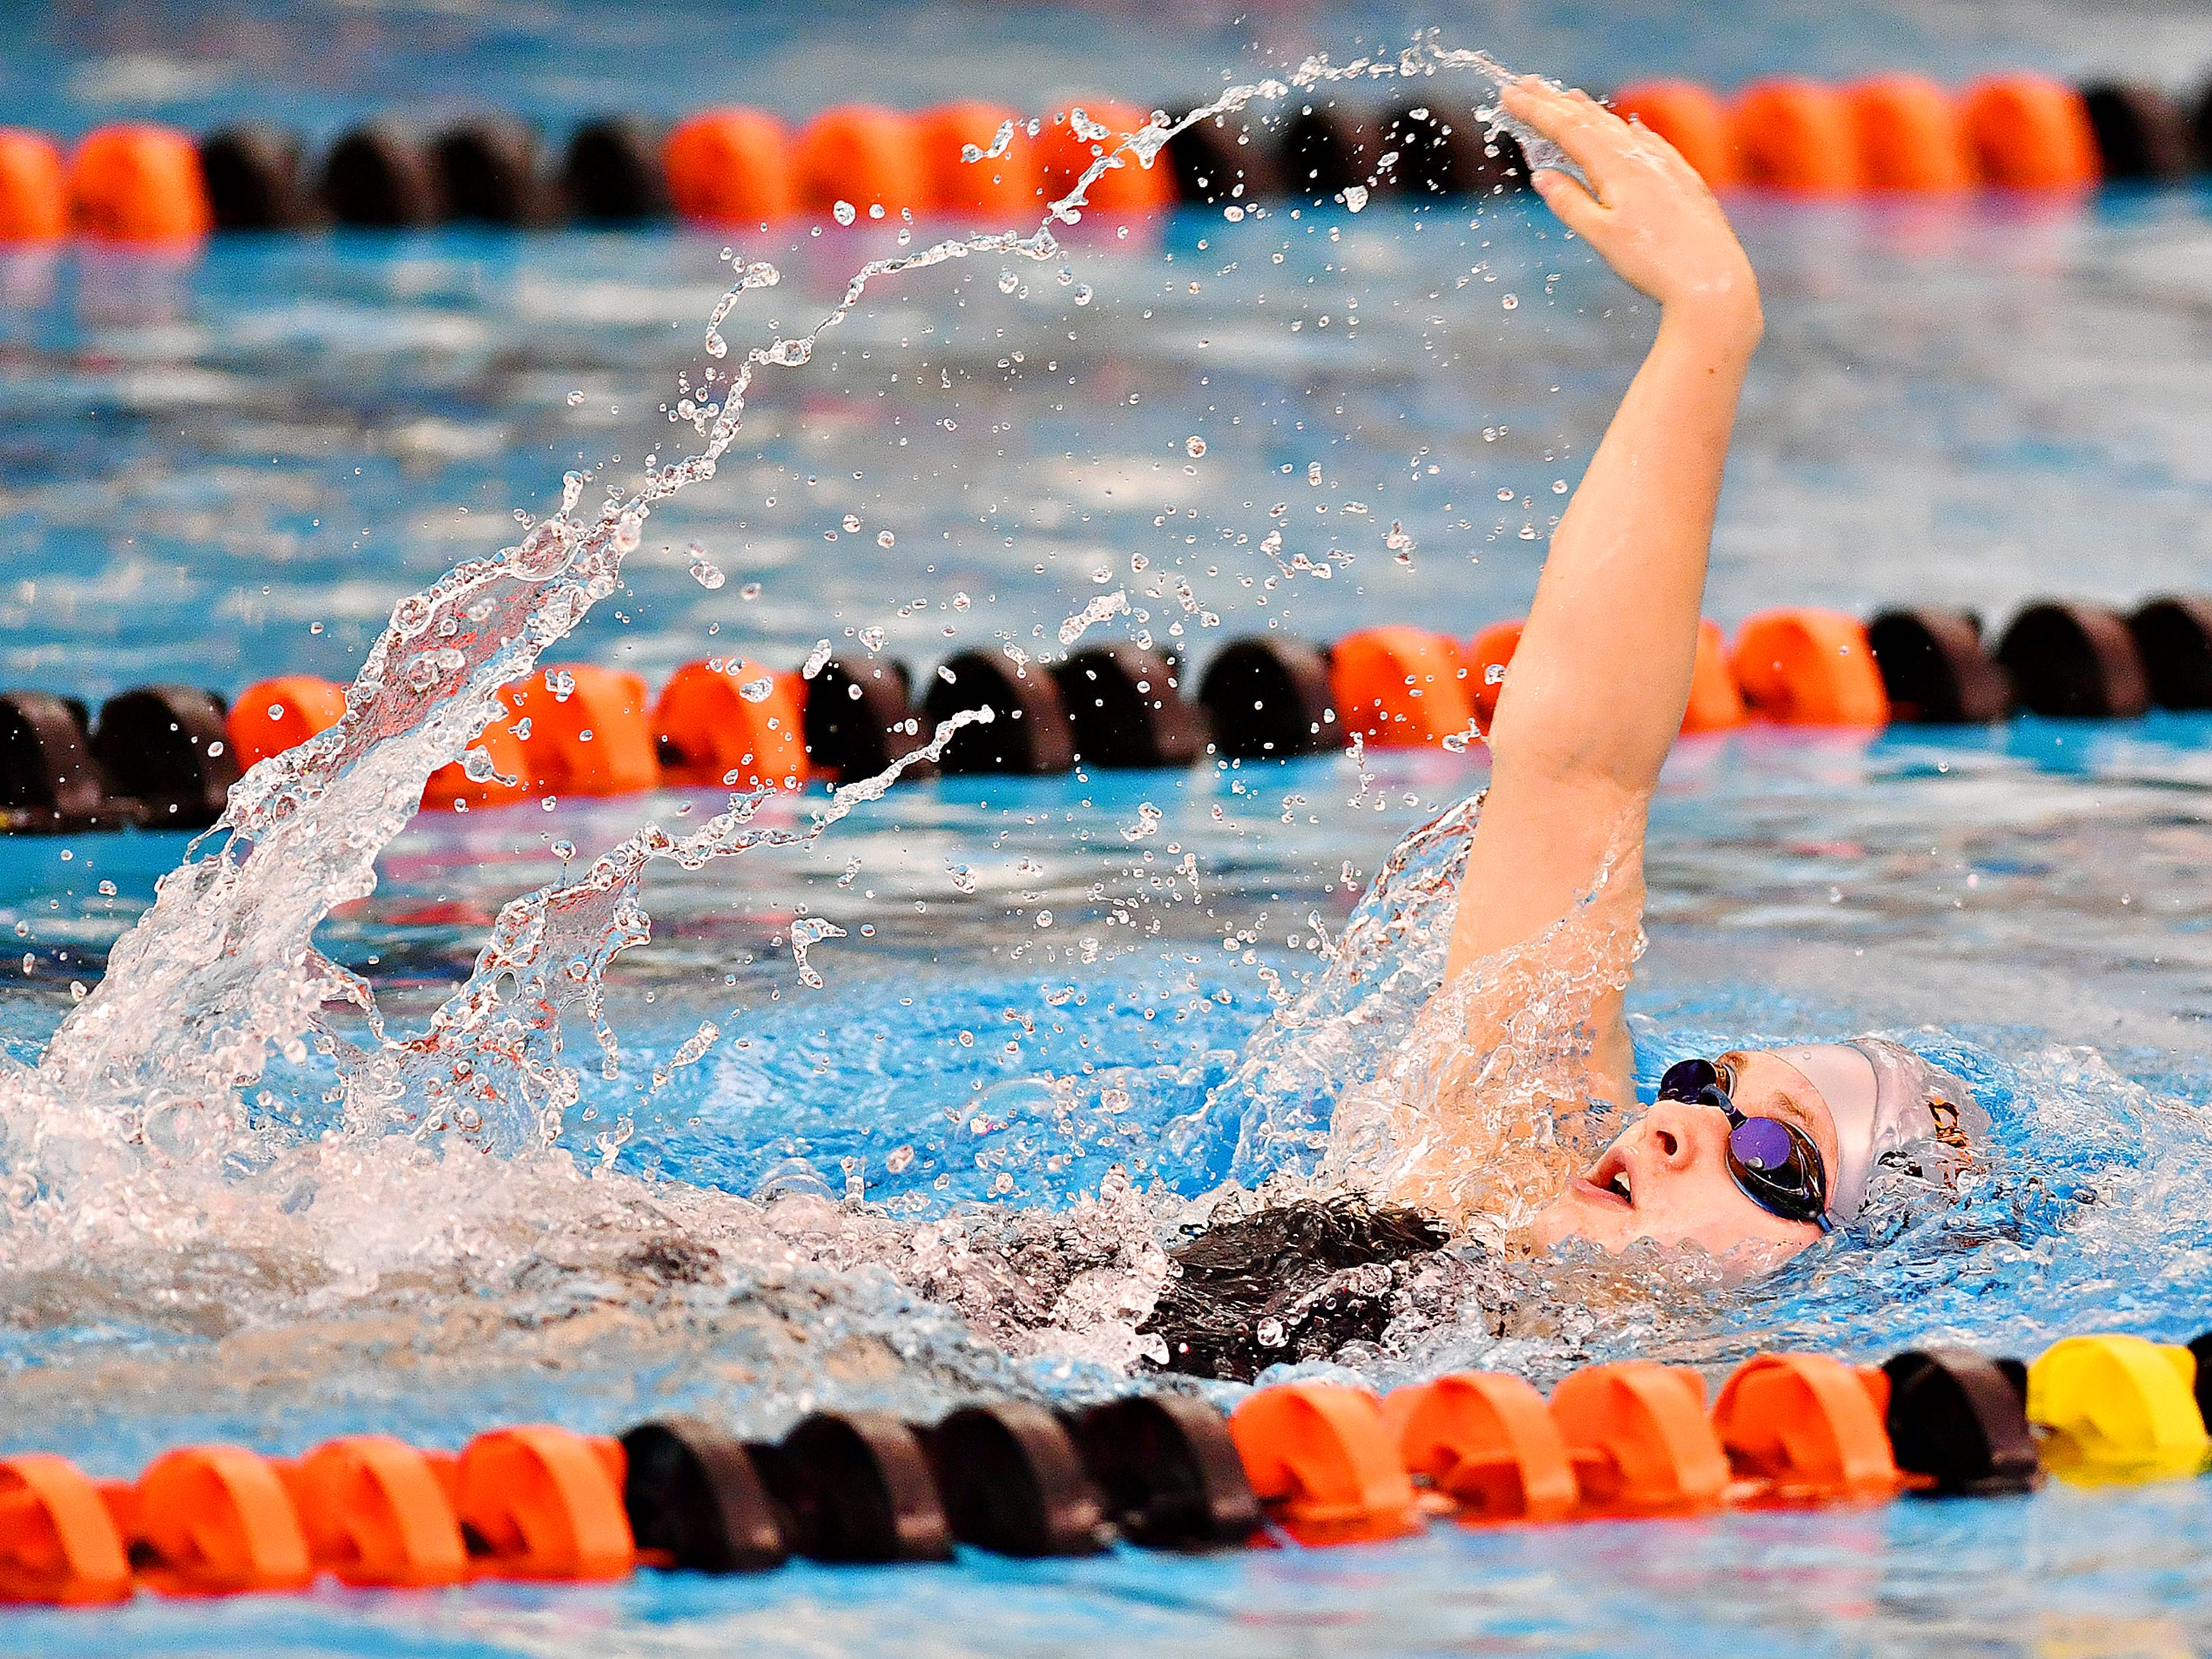 Central York's Sydney Ulmer competes in the 200 Yard Individual Medley during swimming action against Spring Grove at Central York High School in Springettsbury Township, Thursday, Jan. 3, 2019. Dawn J. Sagert photo